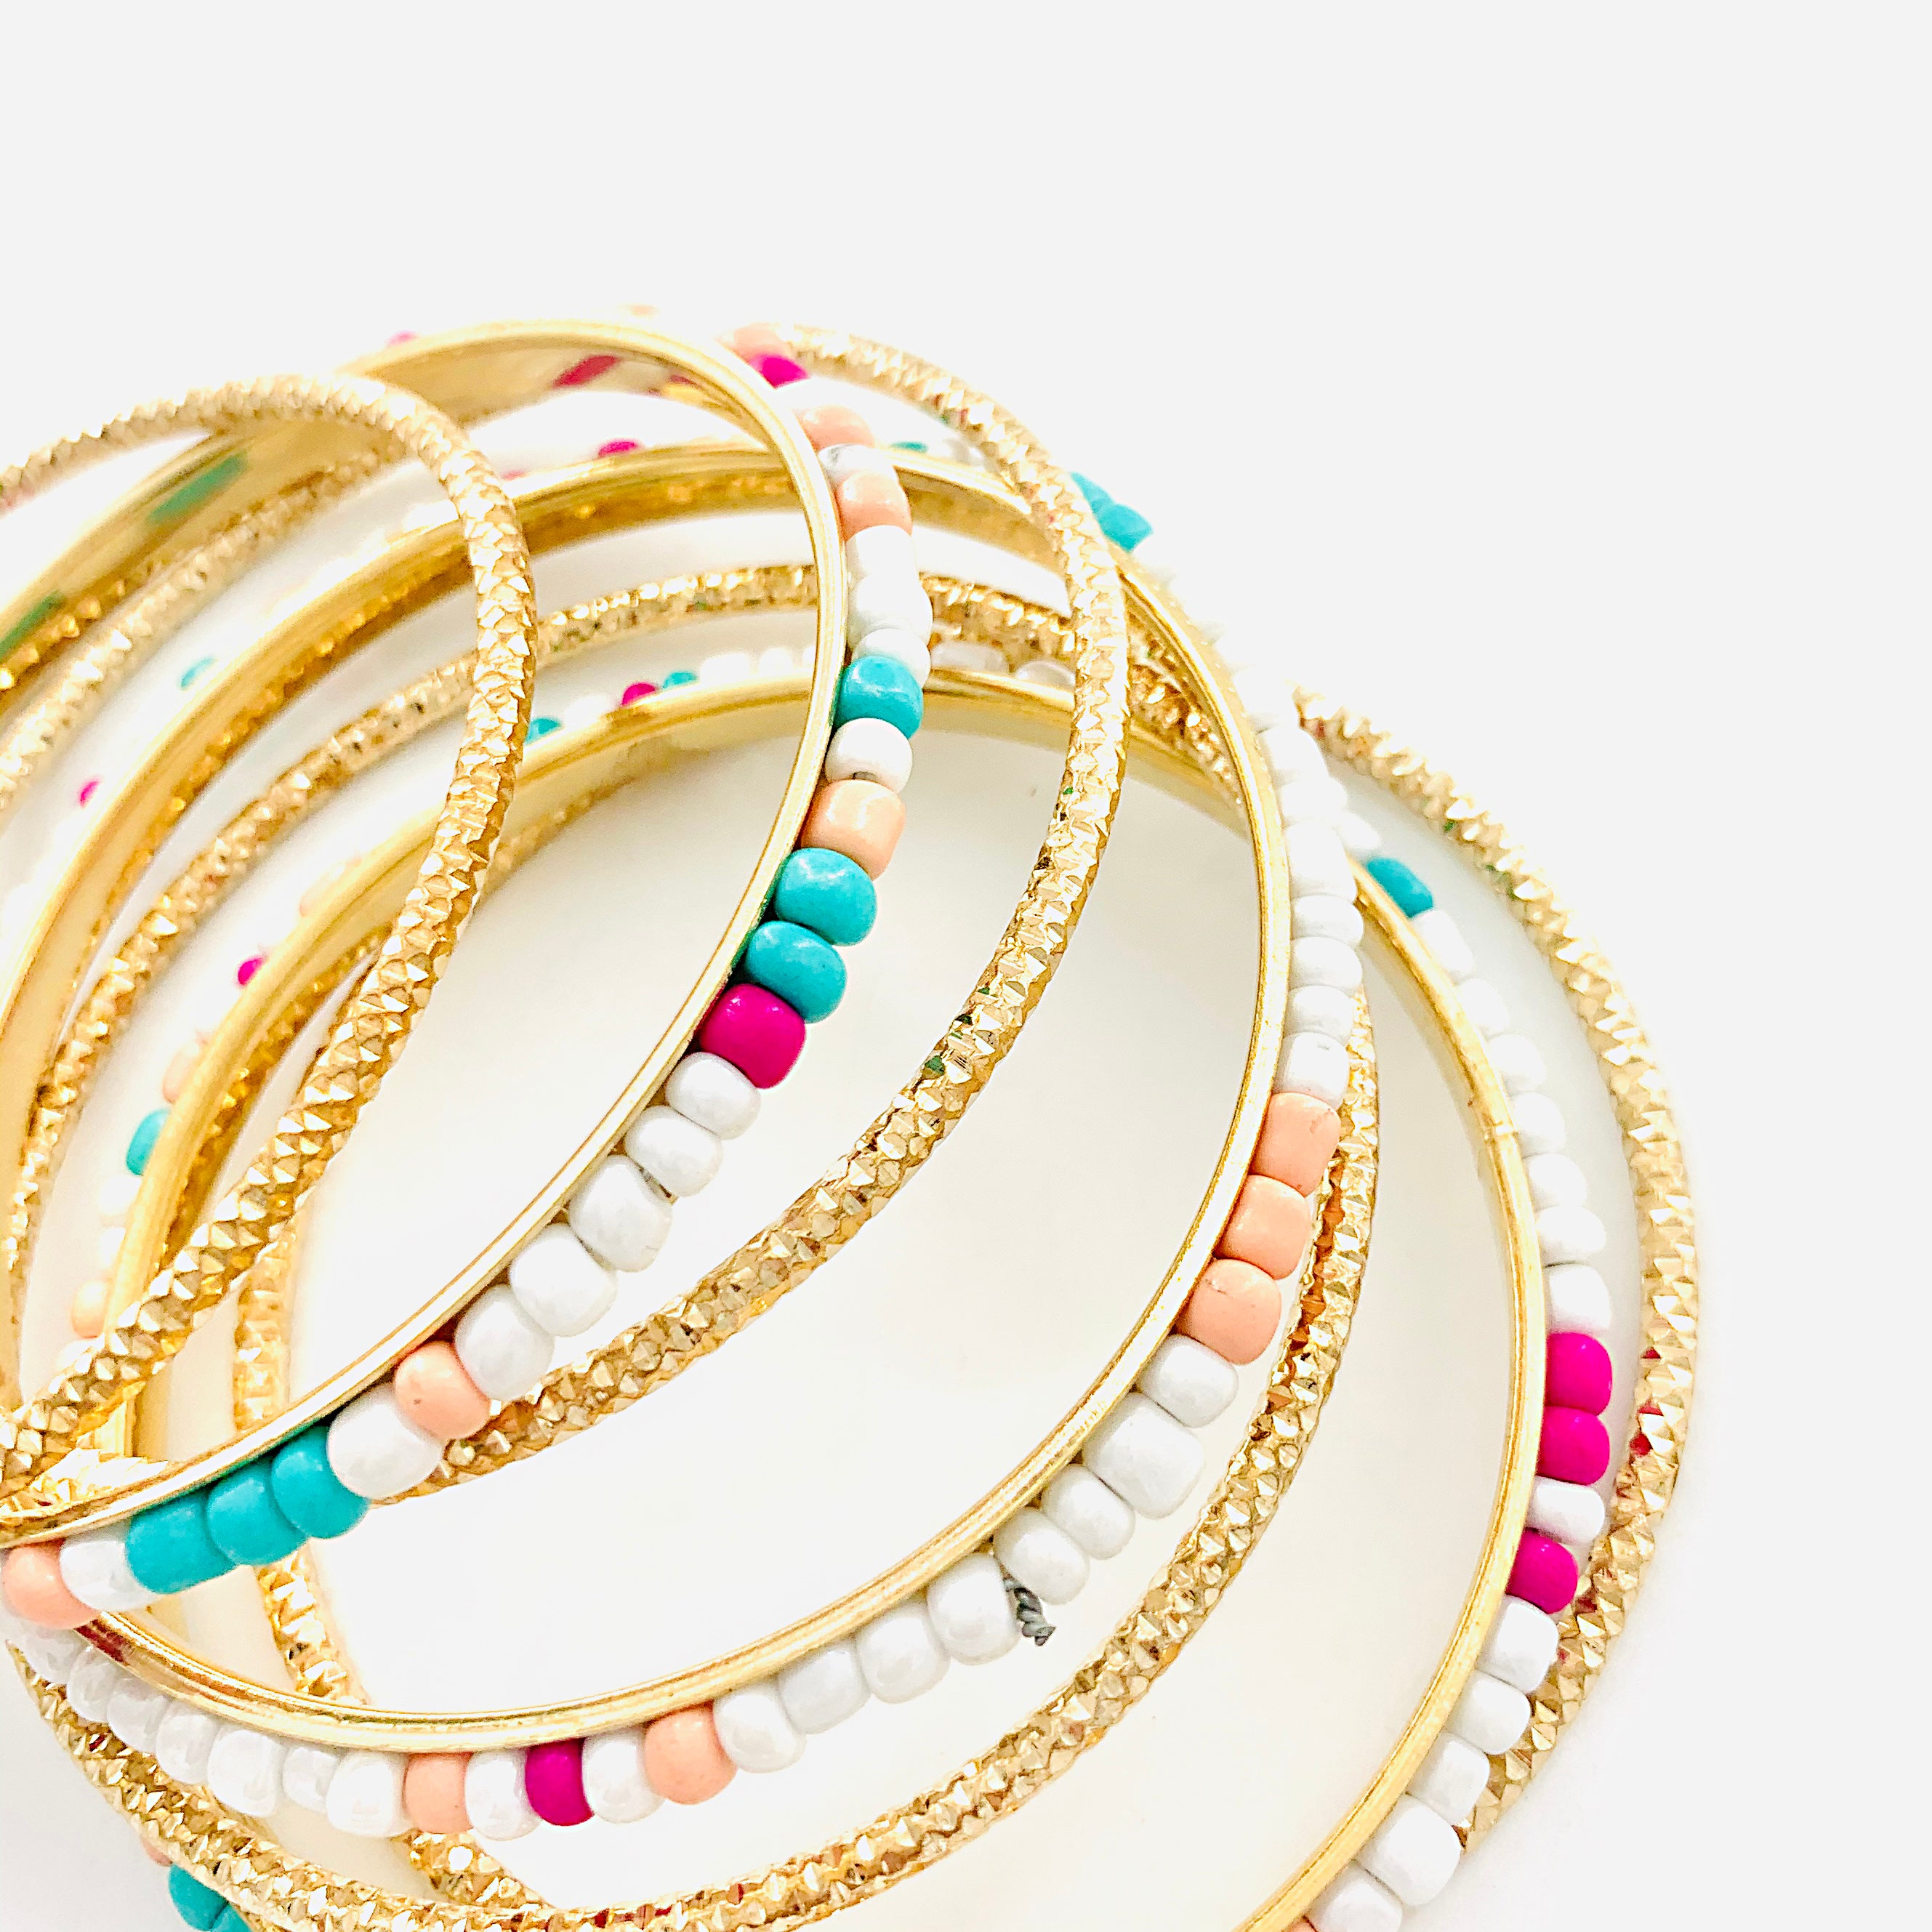 Gold Bangles of Pink, Turquoise, Coral and White Beads